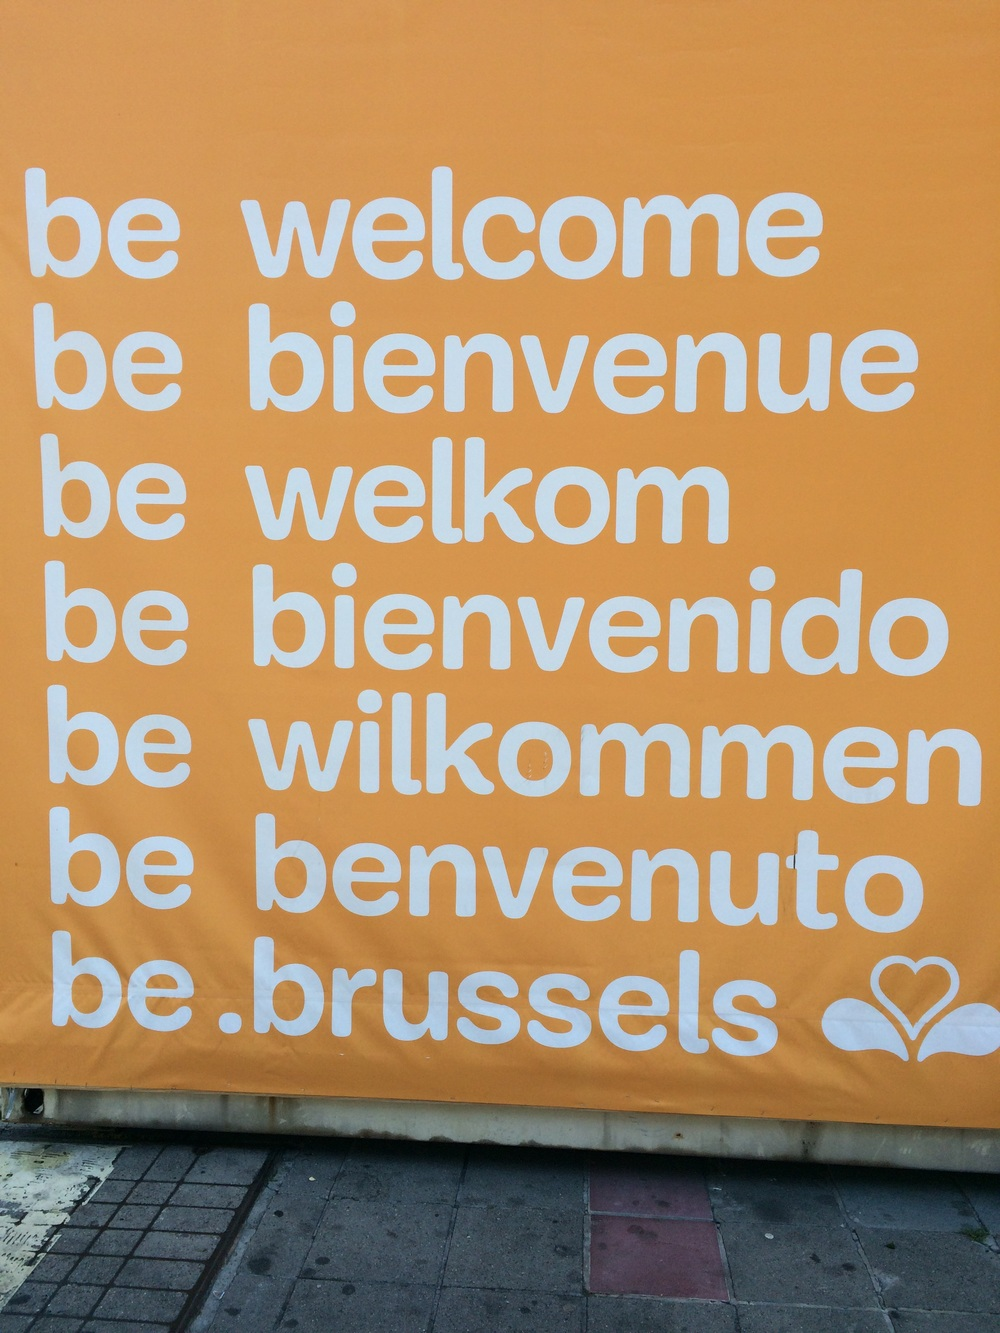 Welcome to Brussels!